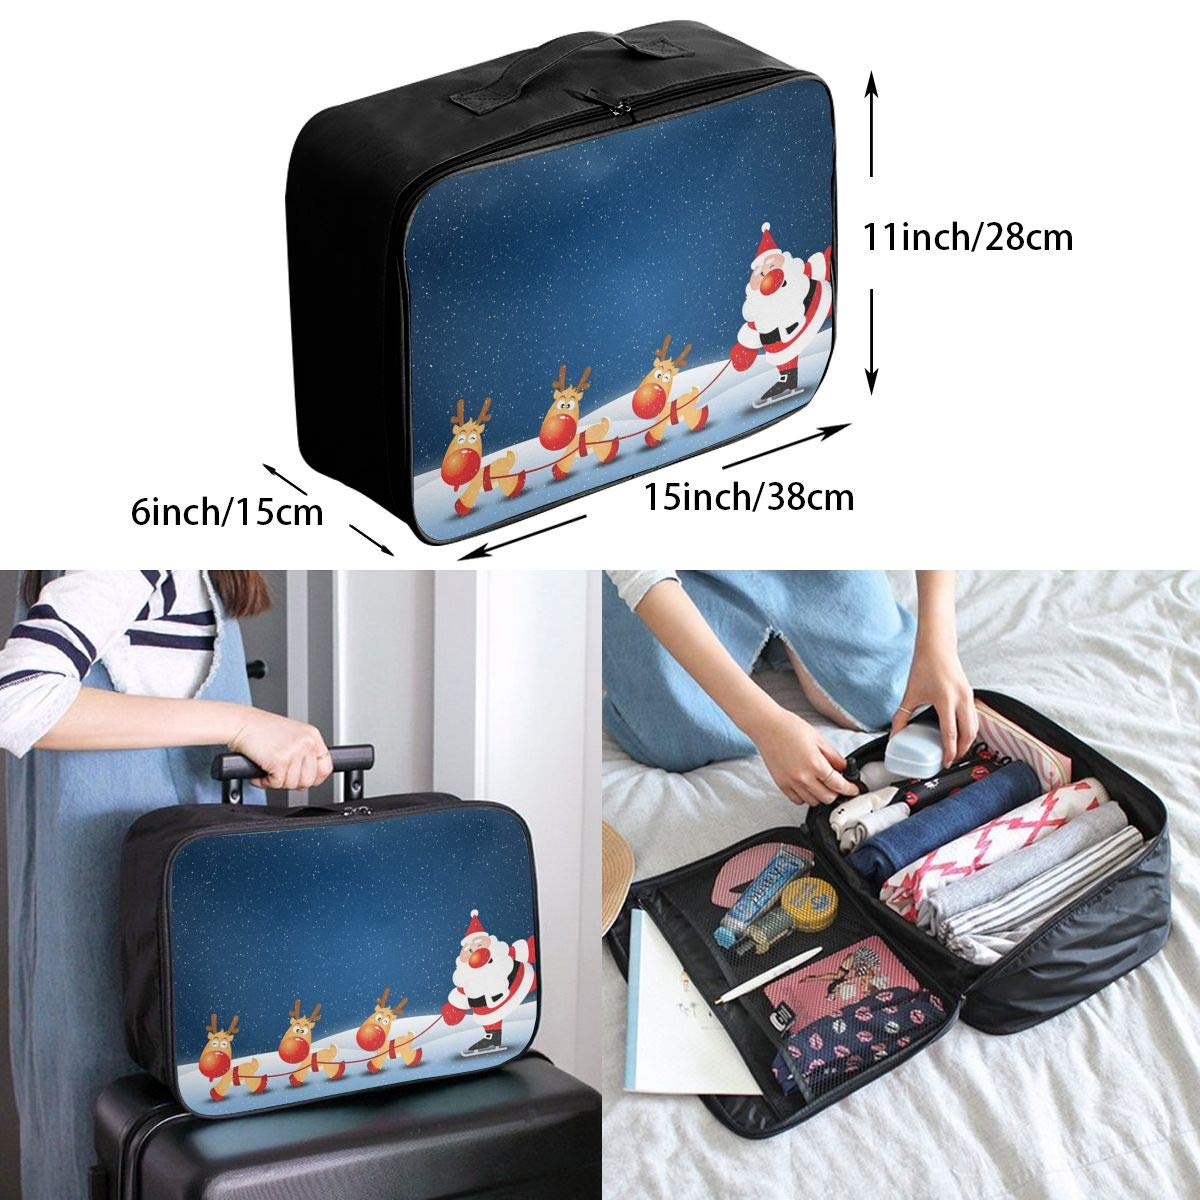 Travel Luggage Duffle Bag Lightweight Portable Handbag Merry Christmas Large Capacity Waterproof Foldable Storage Tote